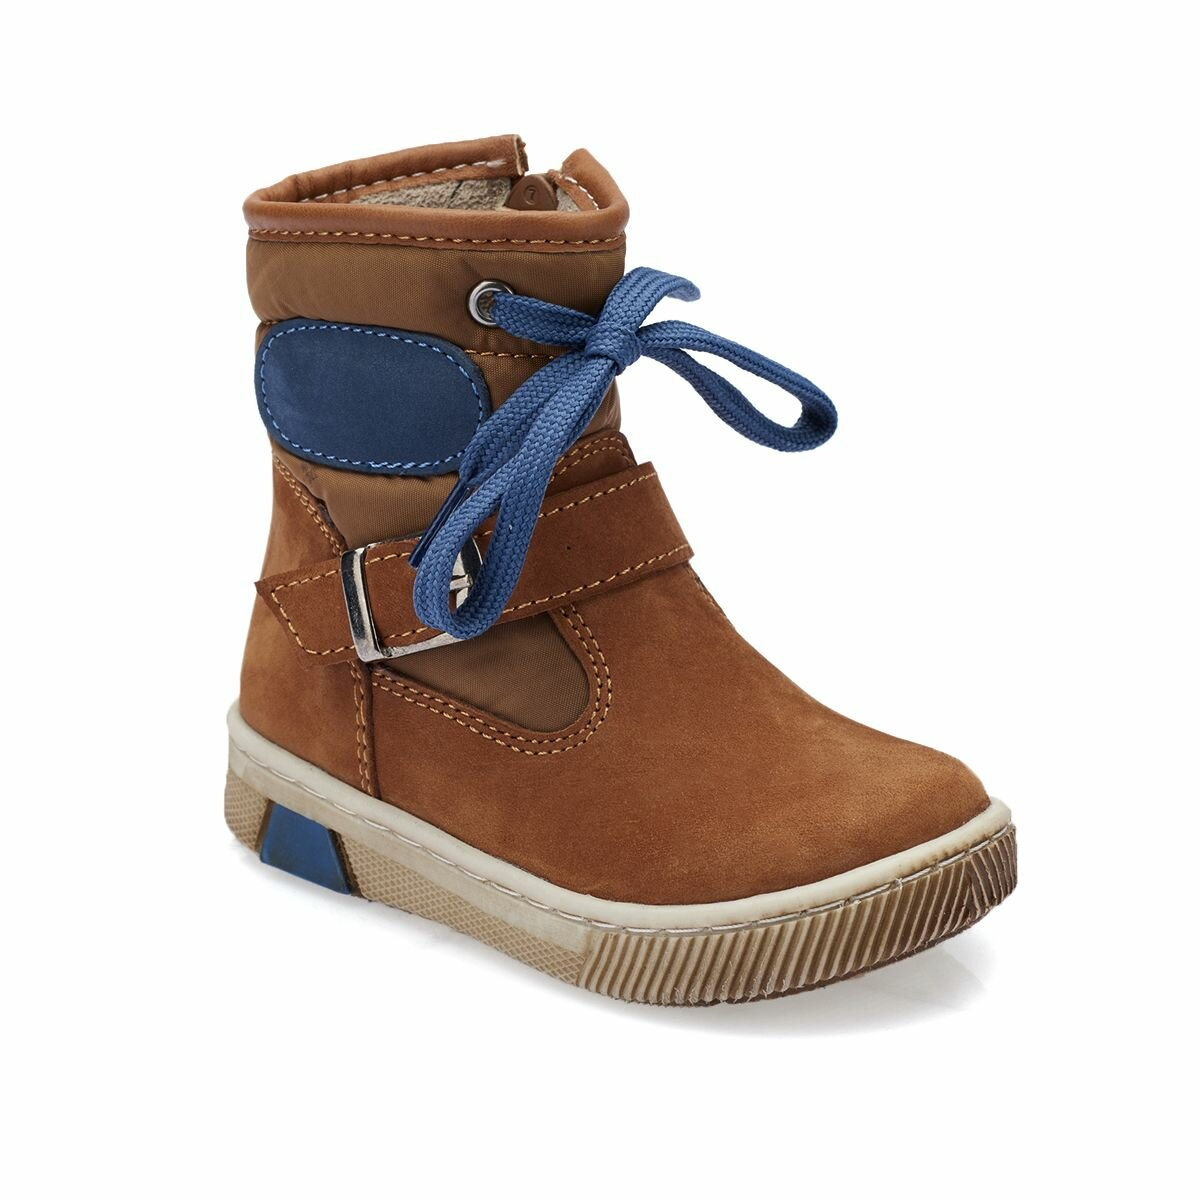 FLO 82.510729.B Cinnamon Male Child Boots Polaris